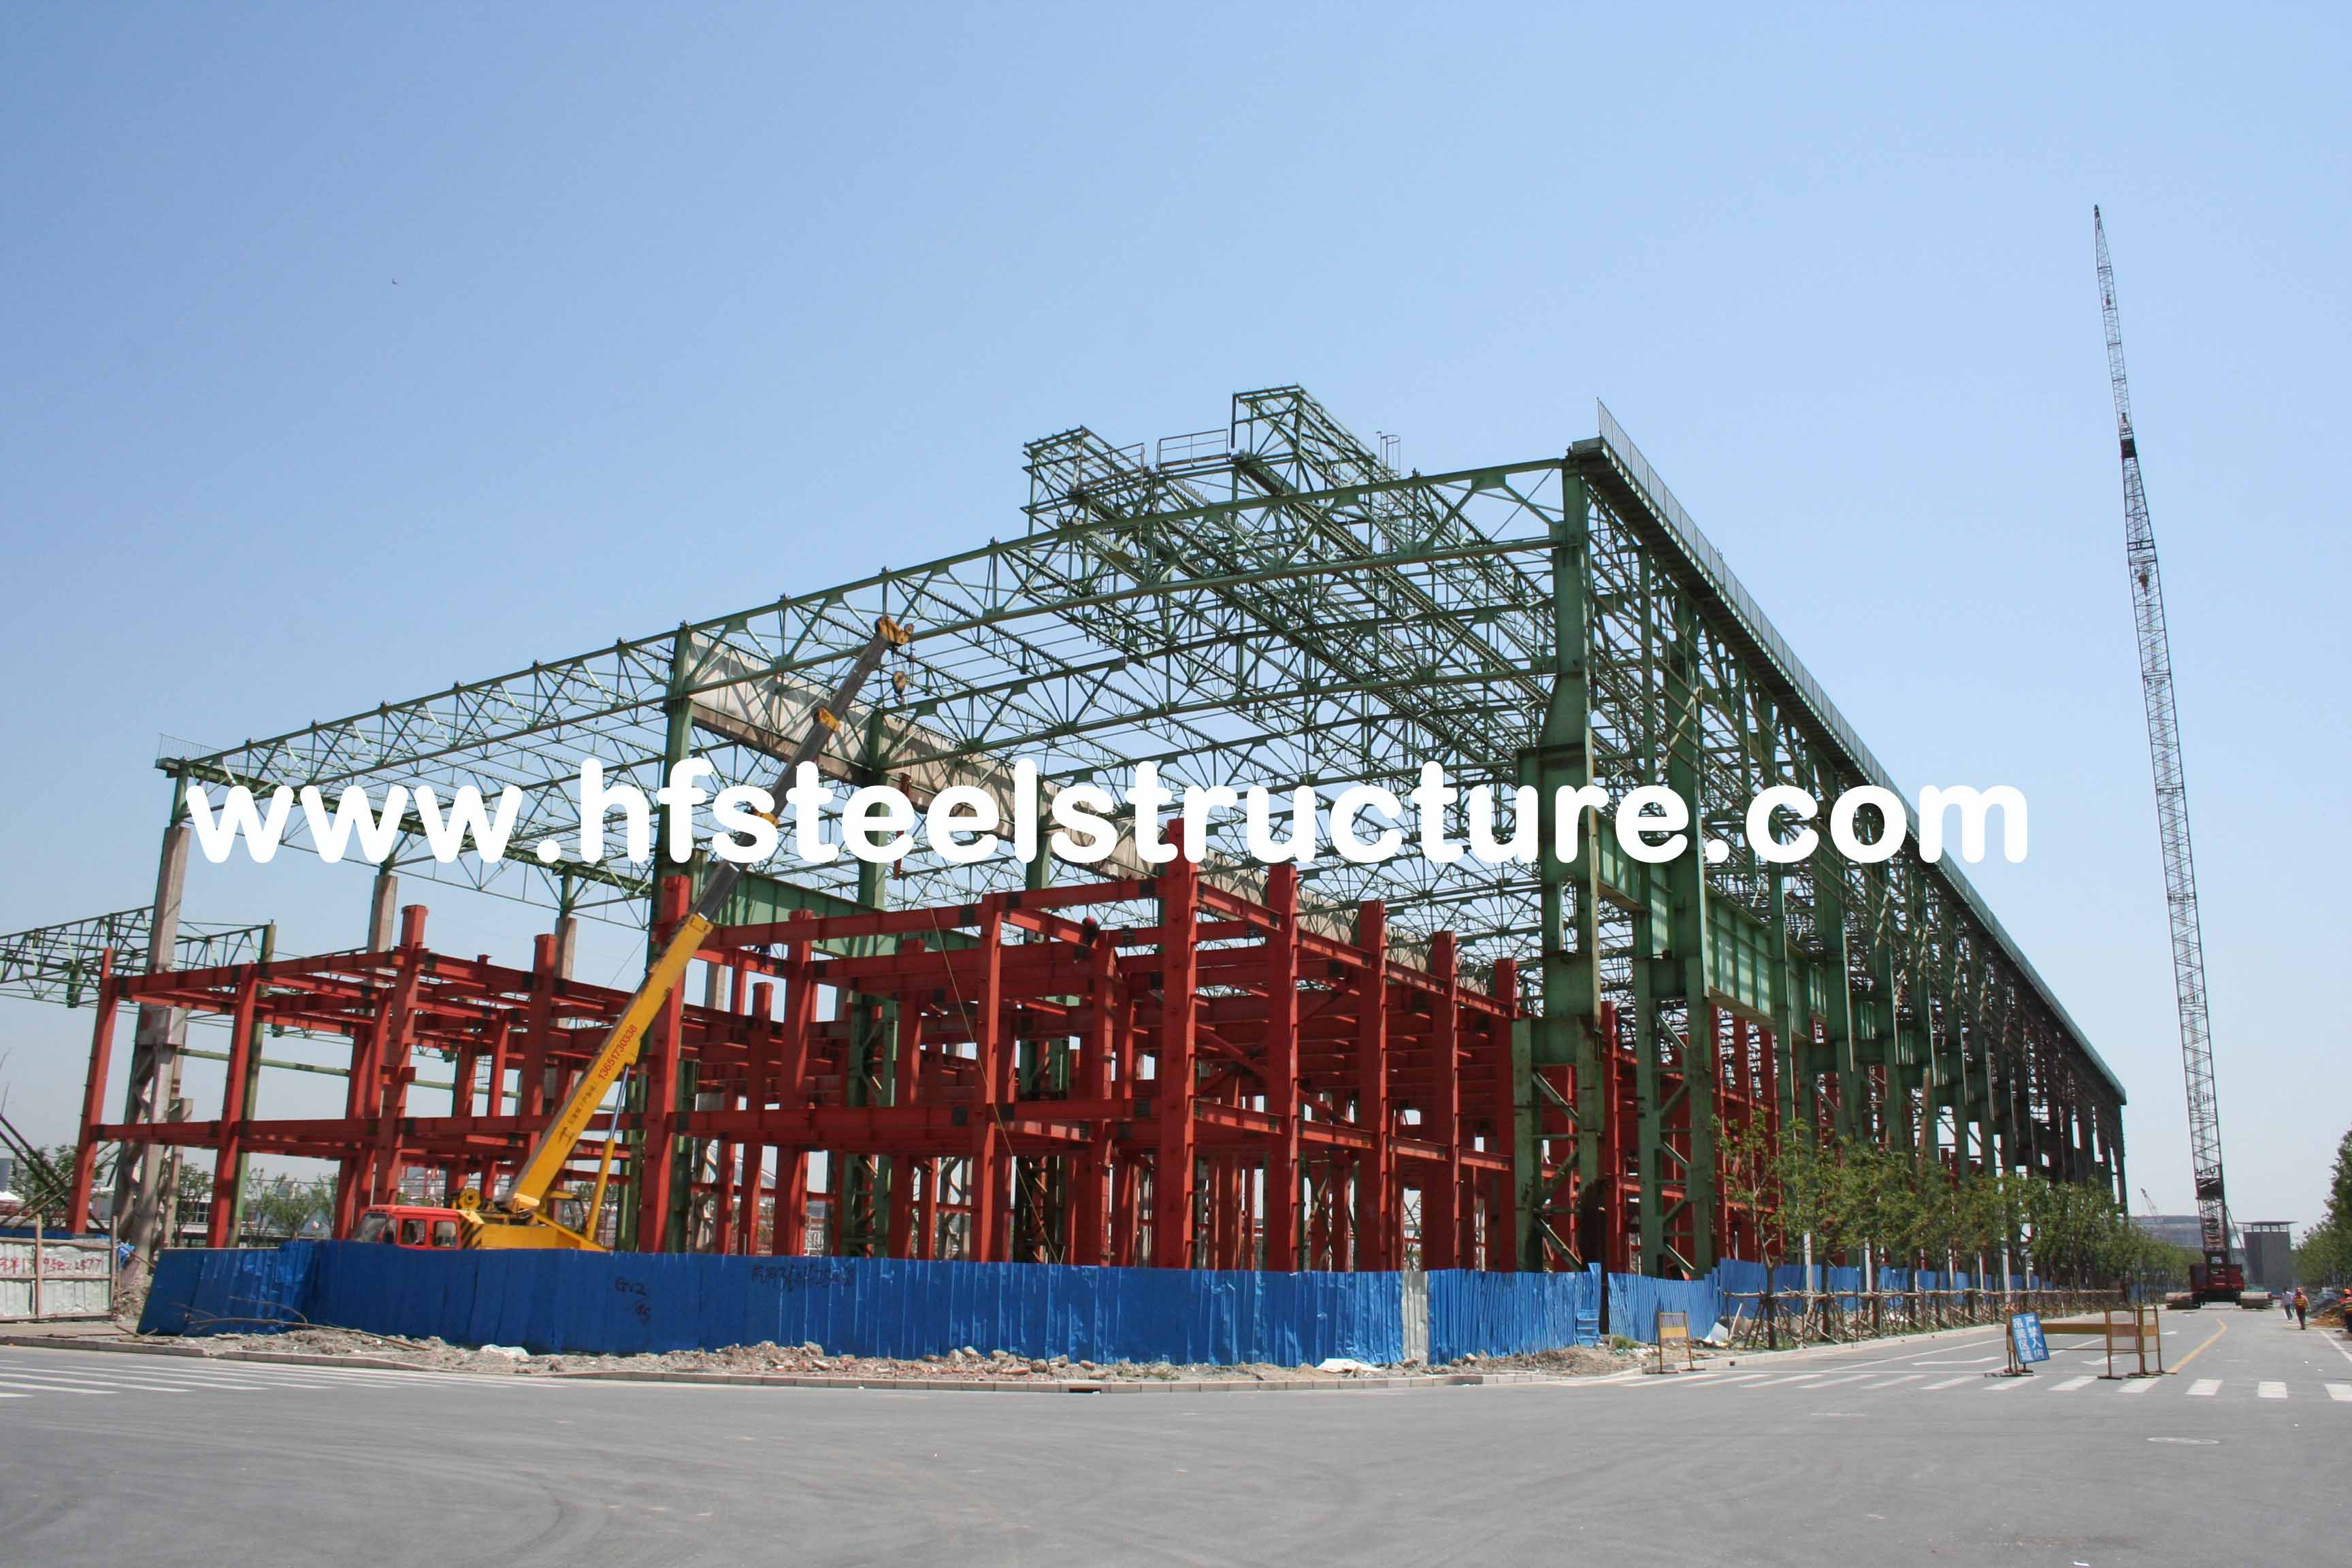 Arch Style Commercial Steel Buildings,Cold Rolled Steel Lightweight Portal Frame Buildings